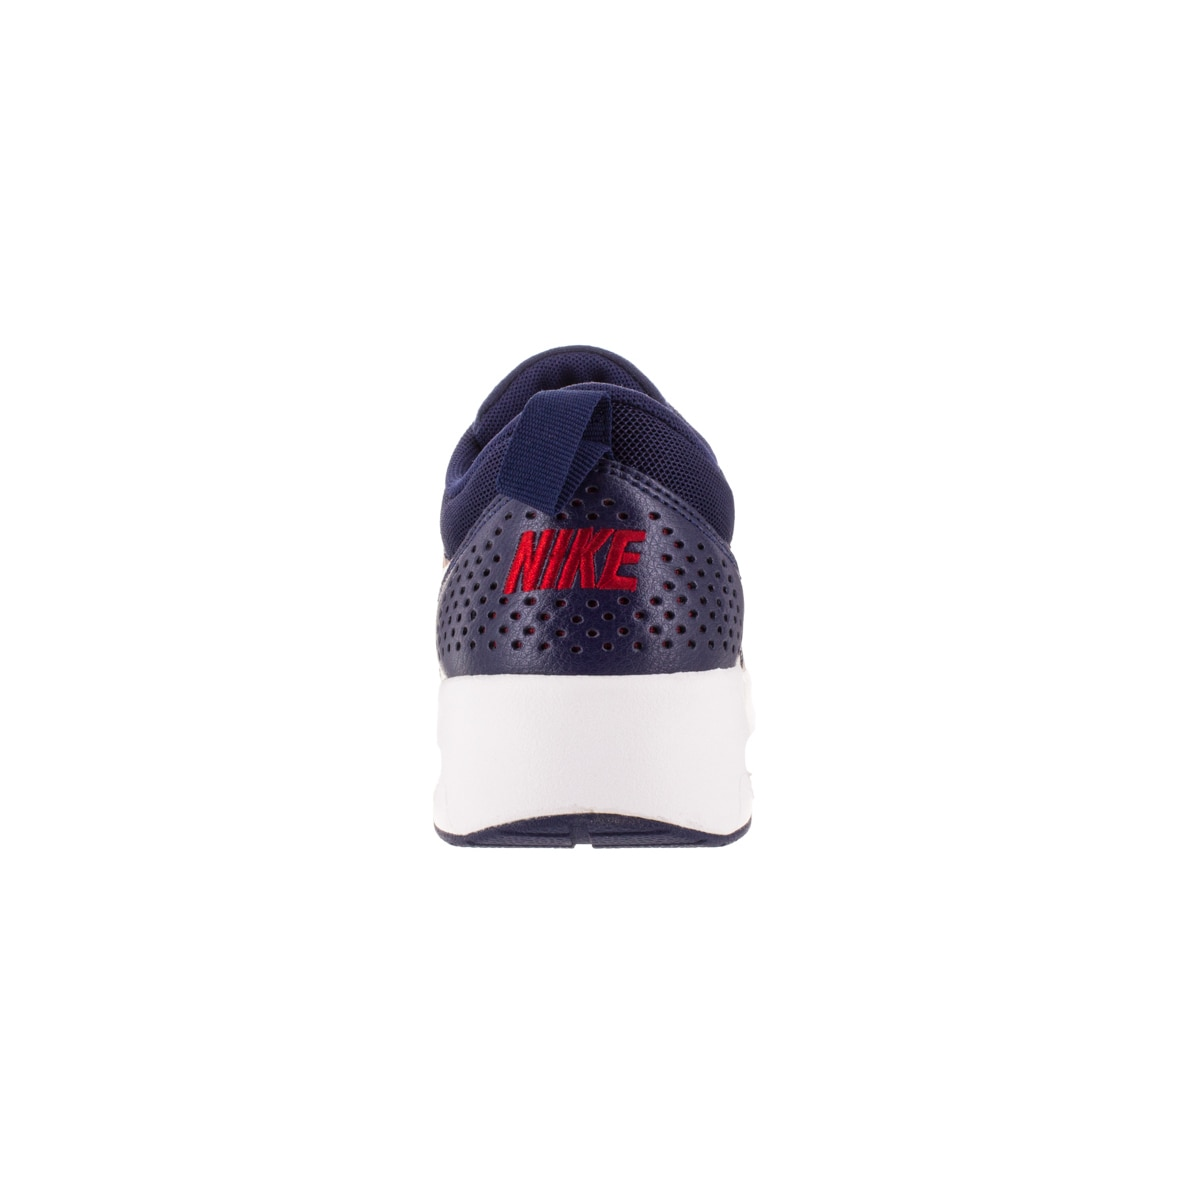 save off 960dd 69dc3 Shop Nike Women s Air Max Thea Print Lyl Blue Lyl Bl University Red White  Running Shoe - Free Shipping Today - Overstock.com - 12322600